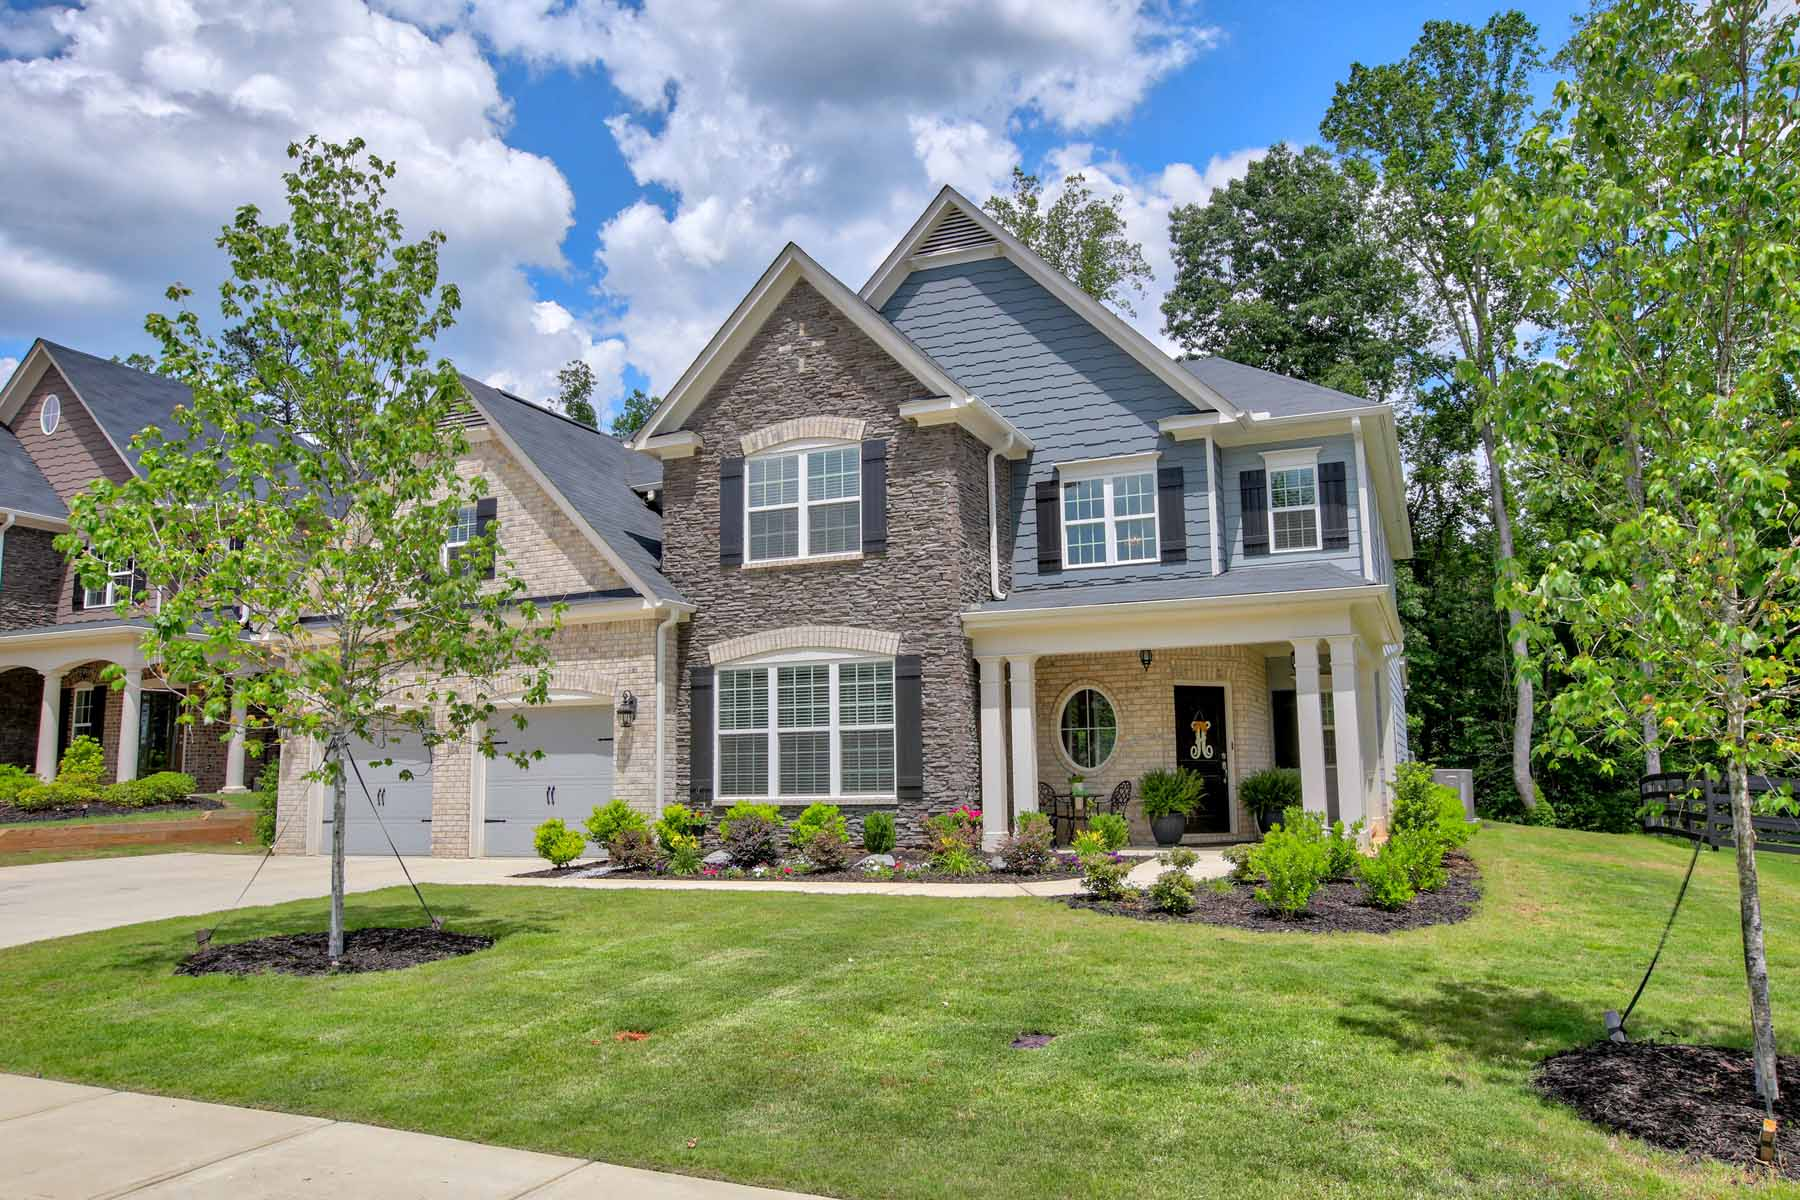 Casa Unifamiliar por un Venta en Stunning Home Filled With Designer Upgrades Close To Vibrant Downtown Woodstock 238 Lakestone Pkwy Woodstock, Georgia, 30188 Estados Unidos